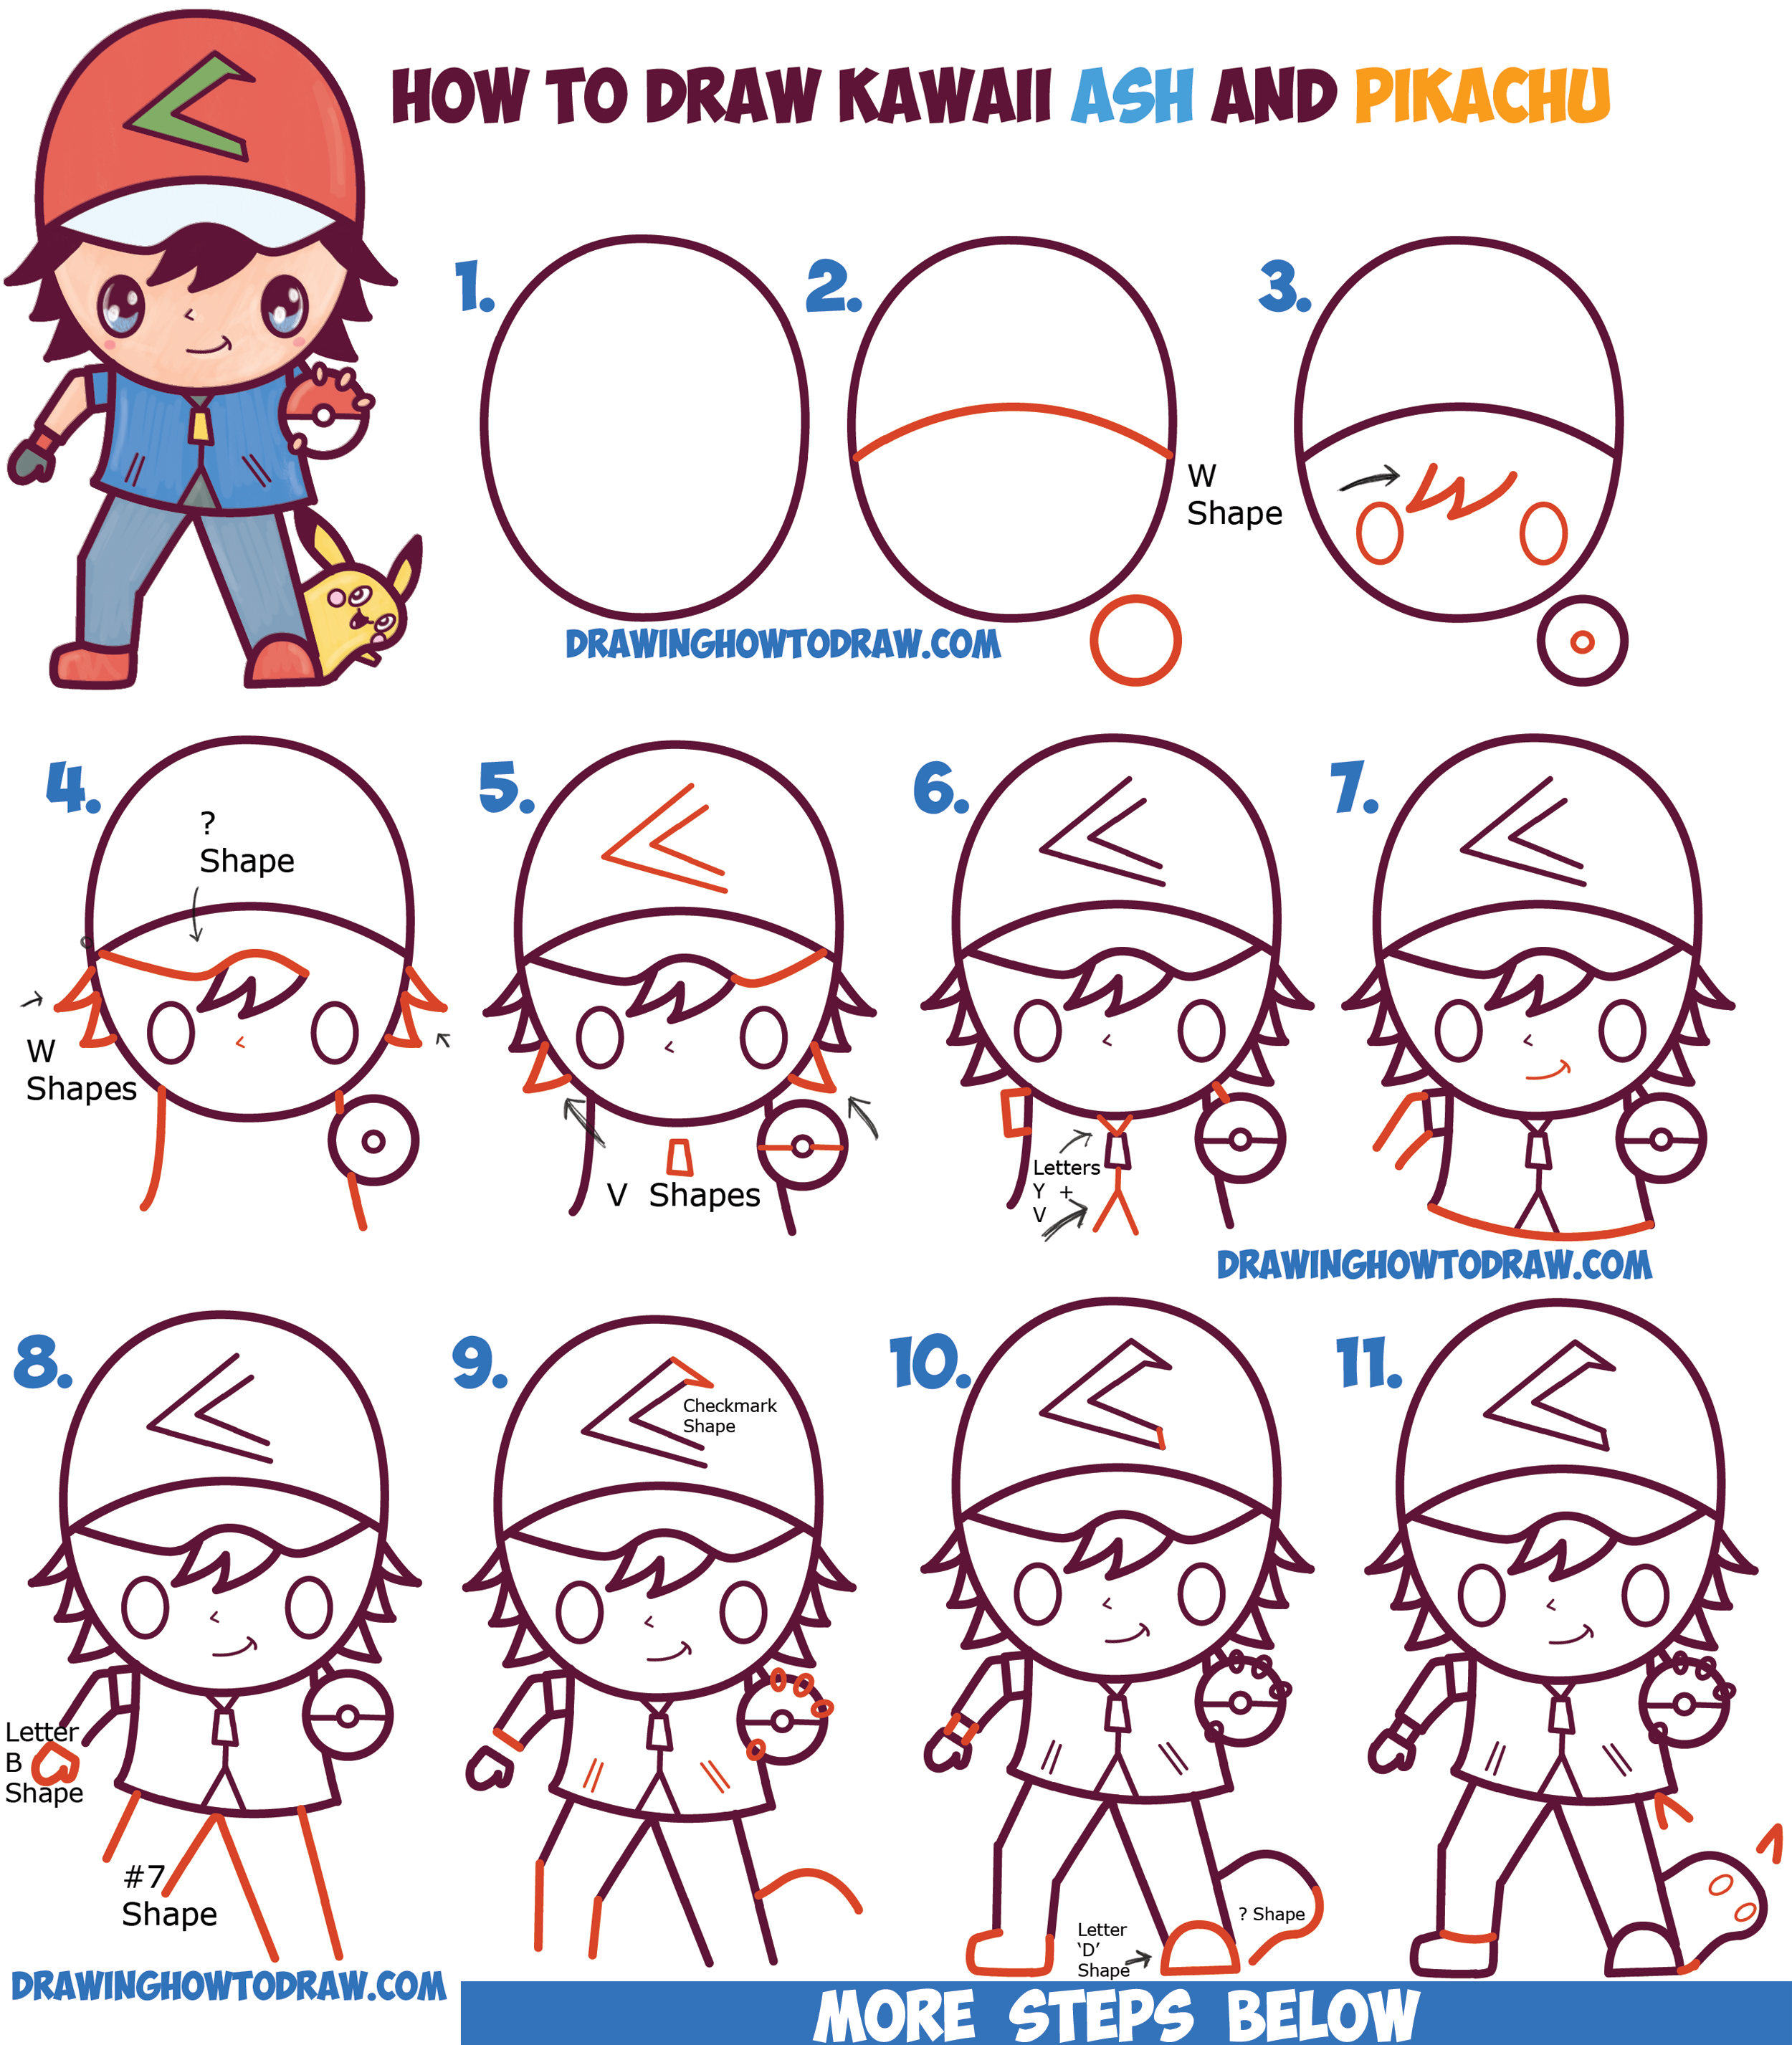 How to draw cute kawaii chibi ash ketchum and pikachu from pokemon easy step by step